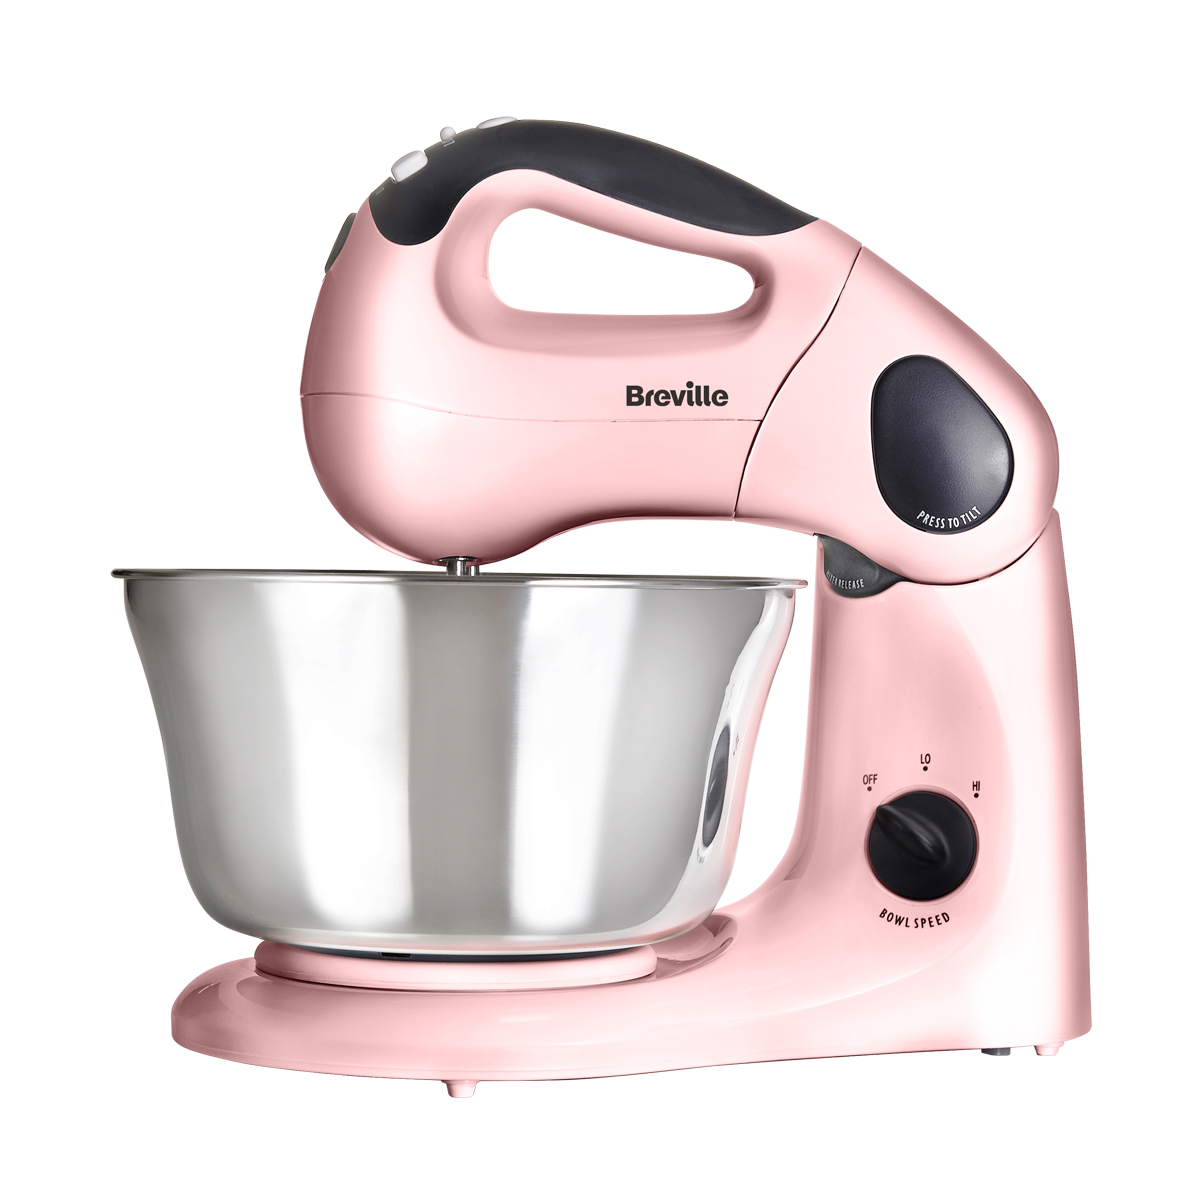 Breville Pick Amp Mix Pink Stand And Hand Food Mixer Vfp058